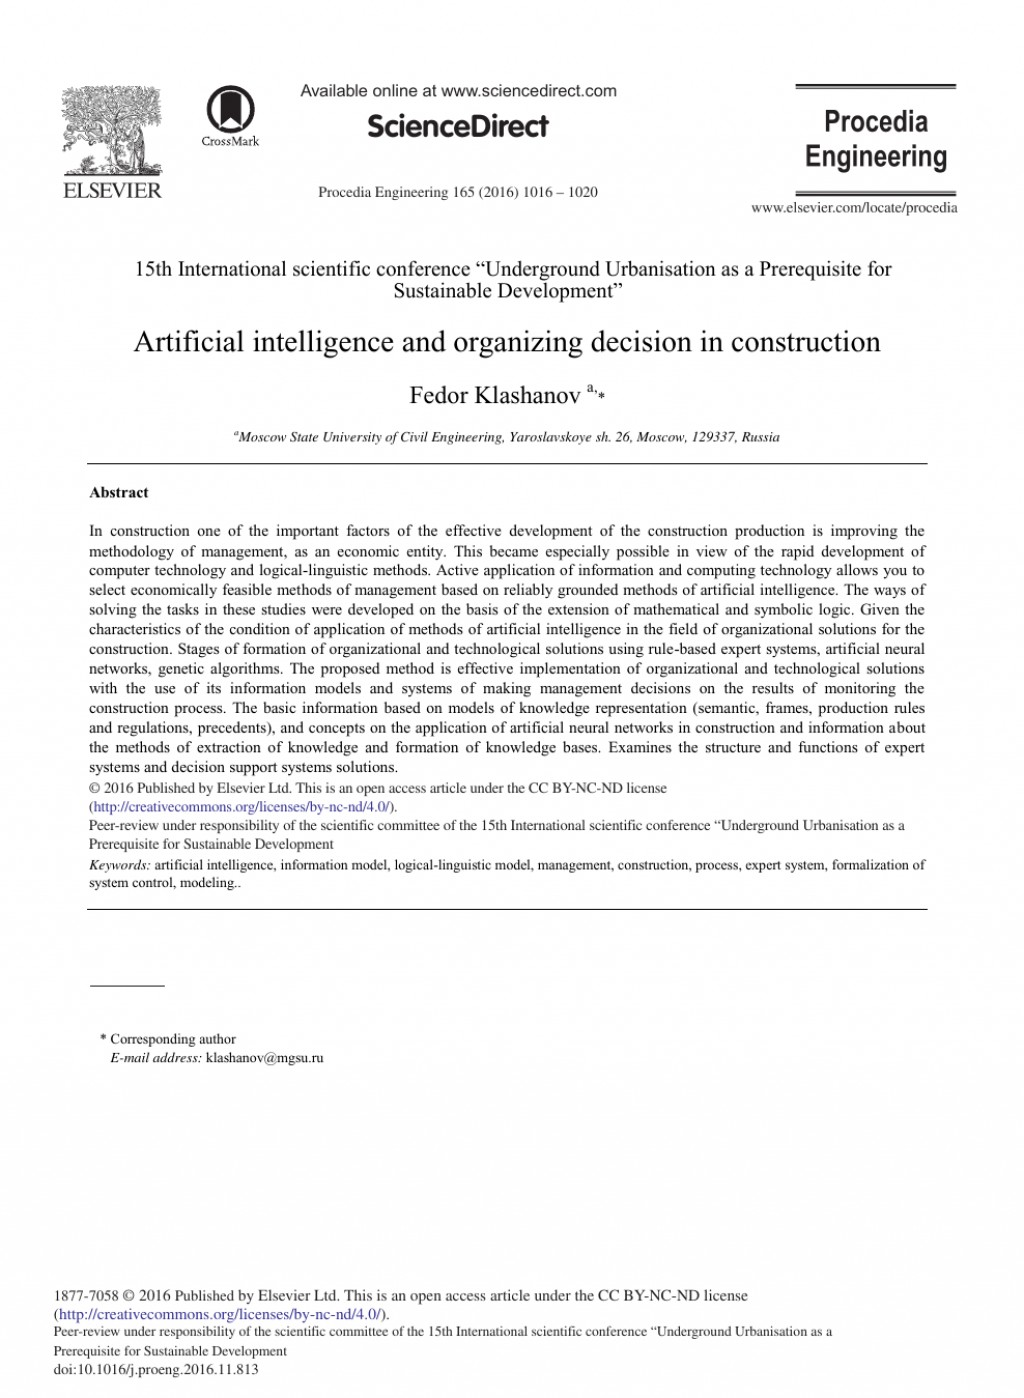 005 Artificial Intelligence Research Paper Phenomenal 2017 Latest On Pdf Large